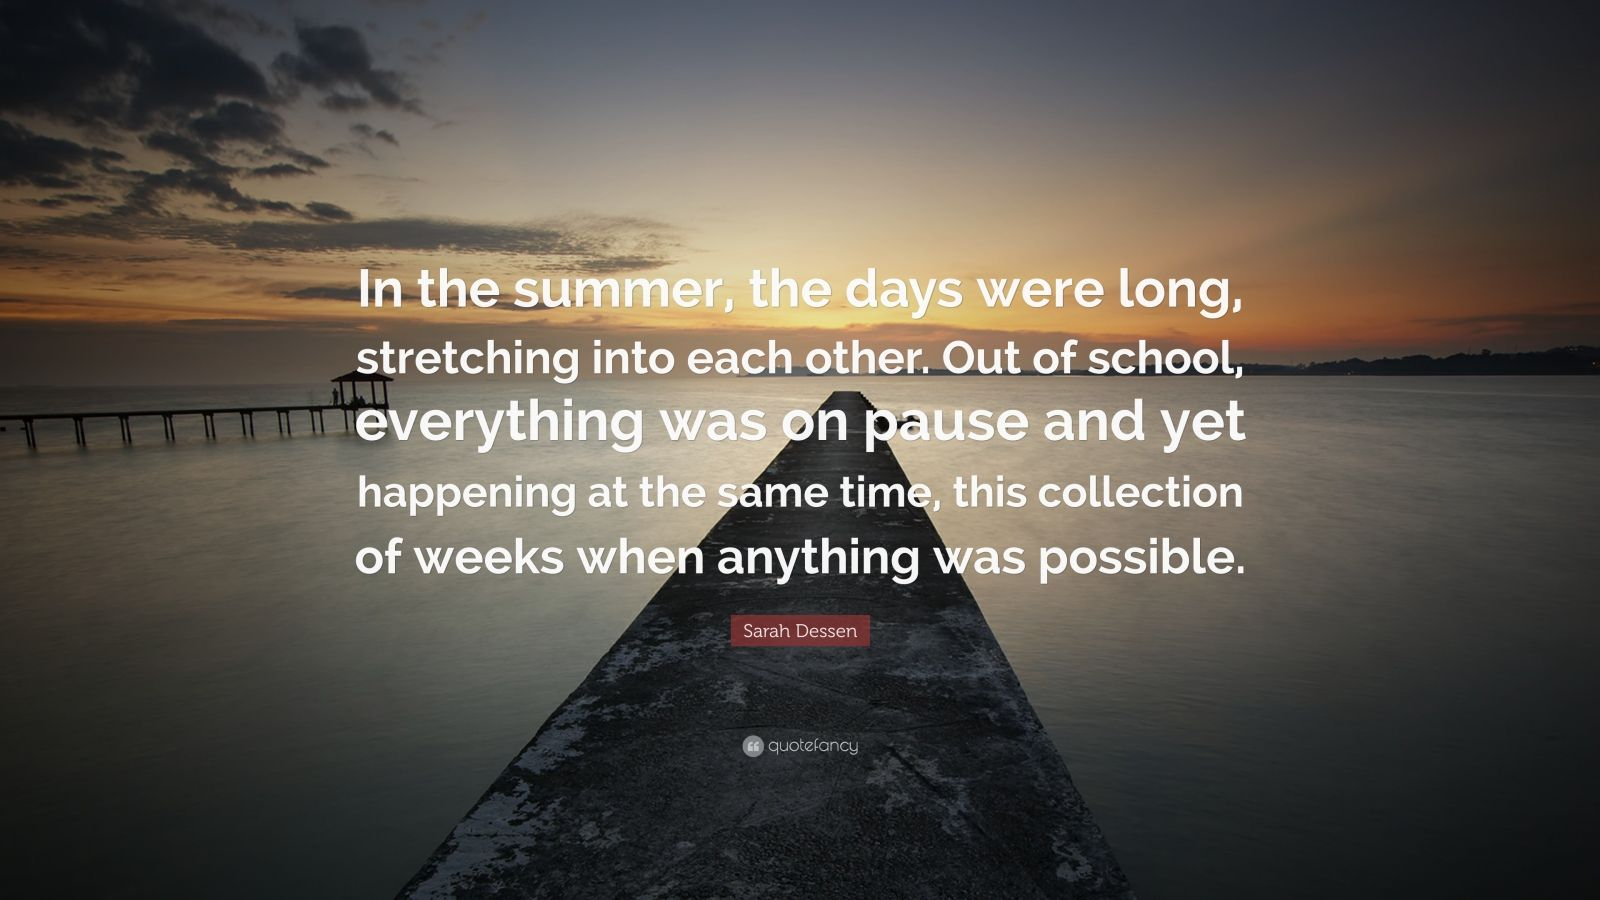 """Sarah Dessen Quote: """"In the summer, the days were long, stretching into each other. Out of school, everything was on pause and yet happening at the same time, this collection of weeks when anything was possible."""""""